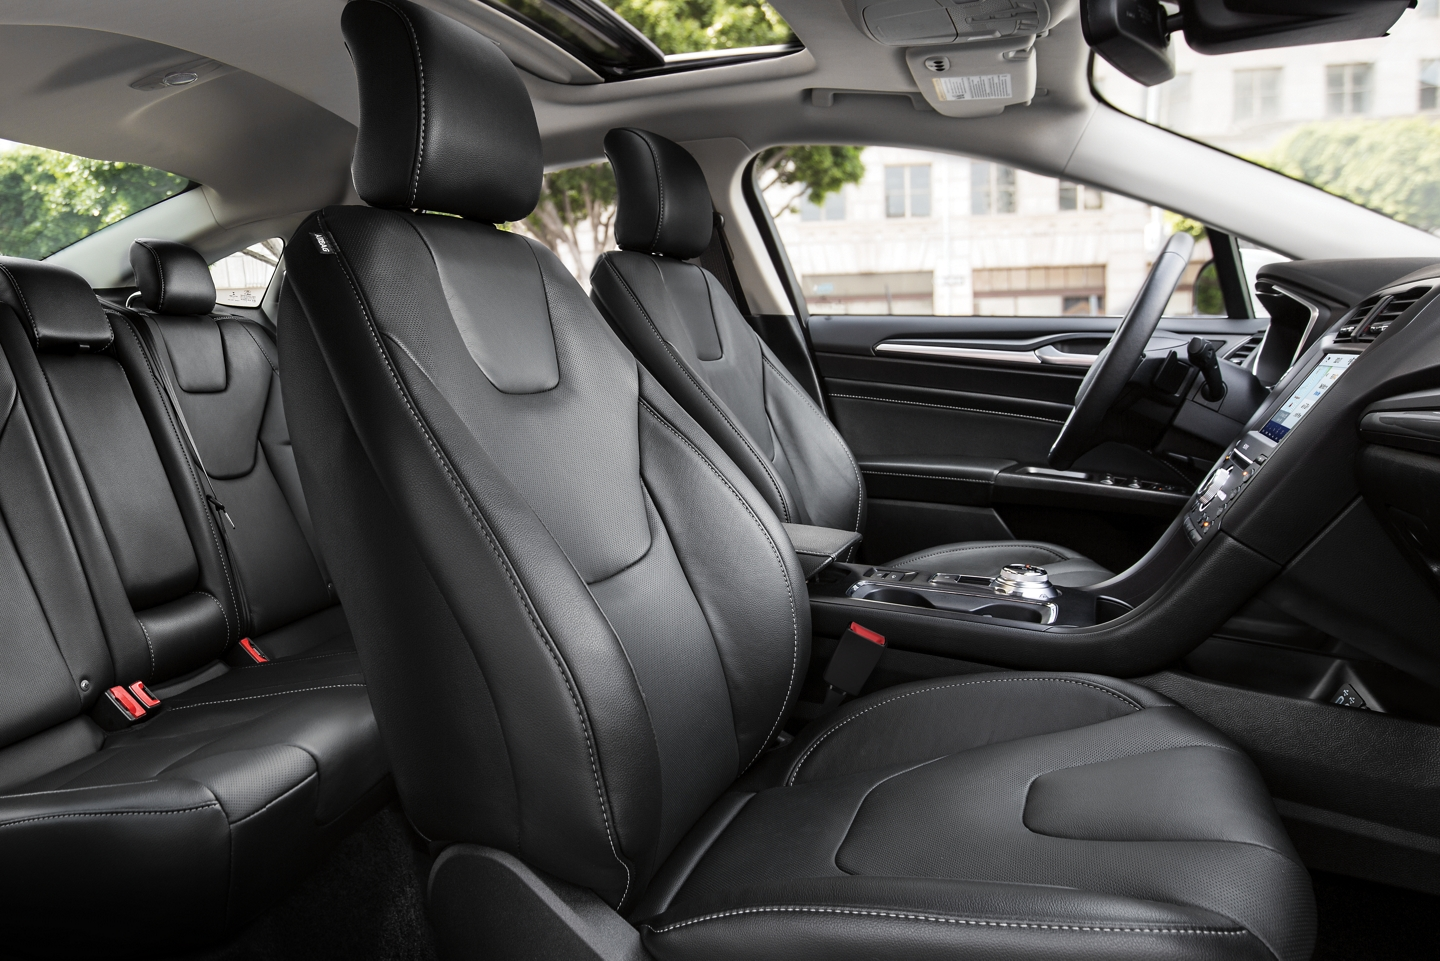 Seating in the 2020 Ford Fusion